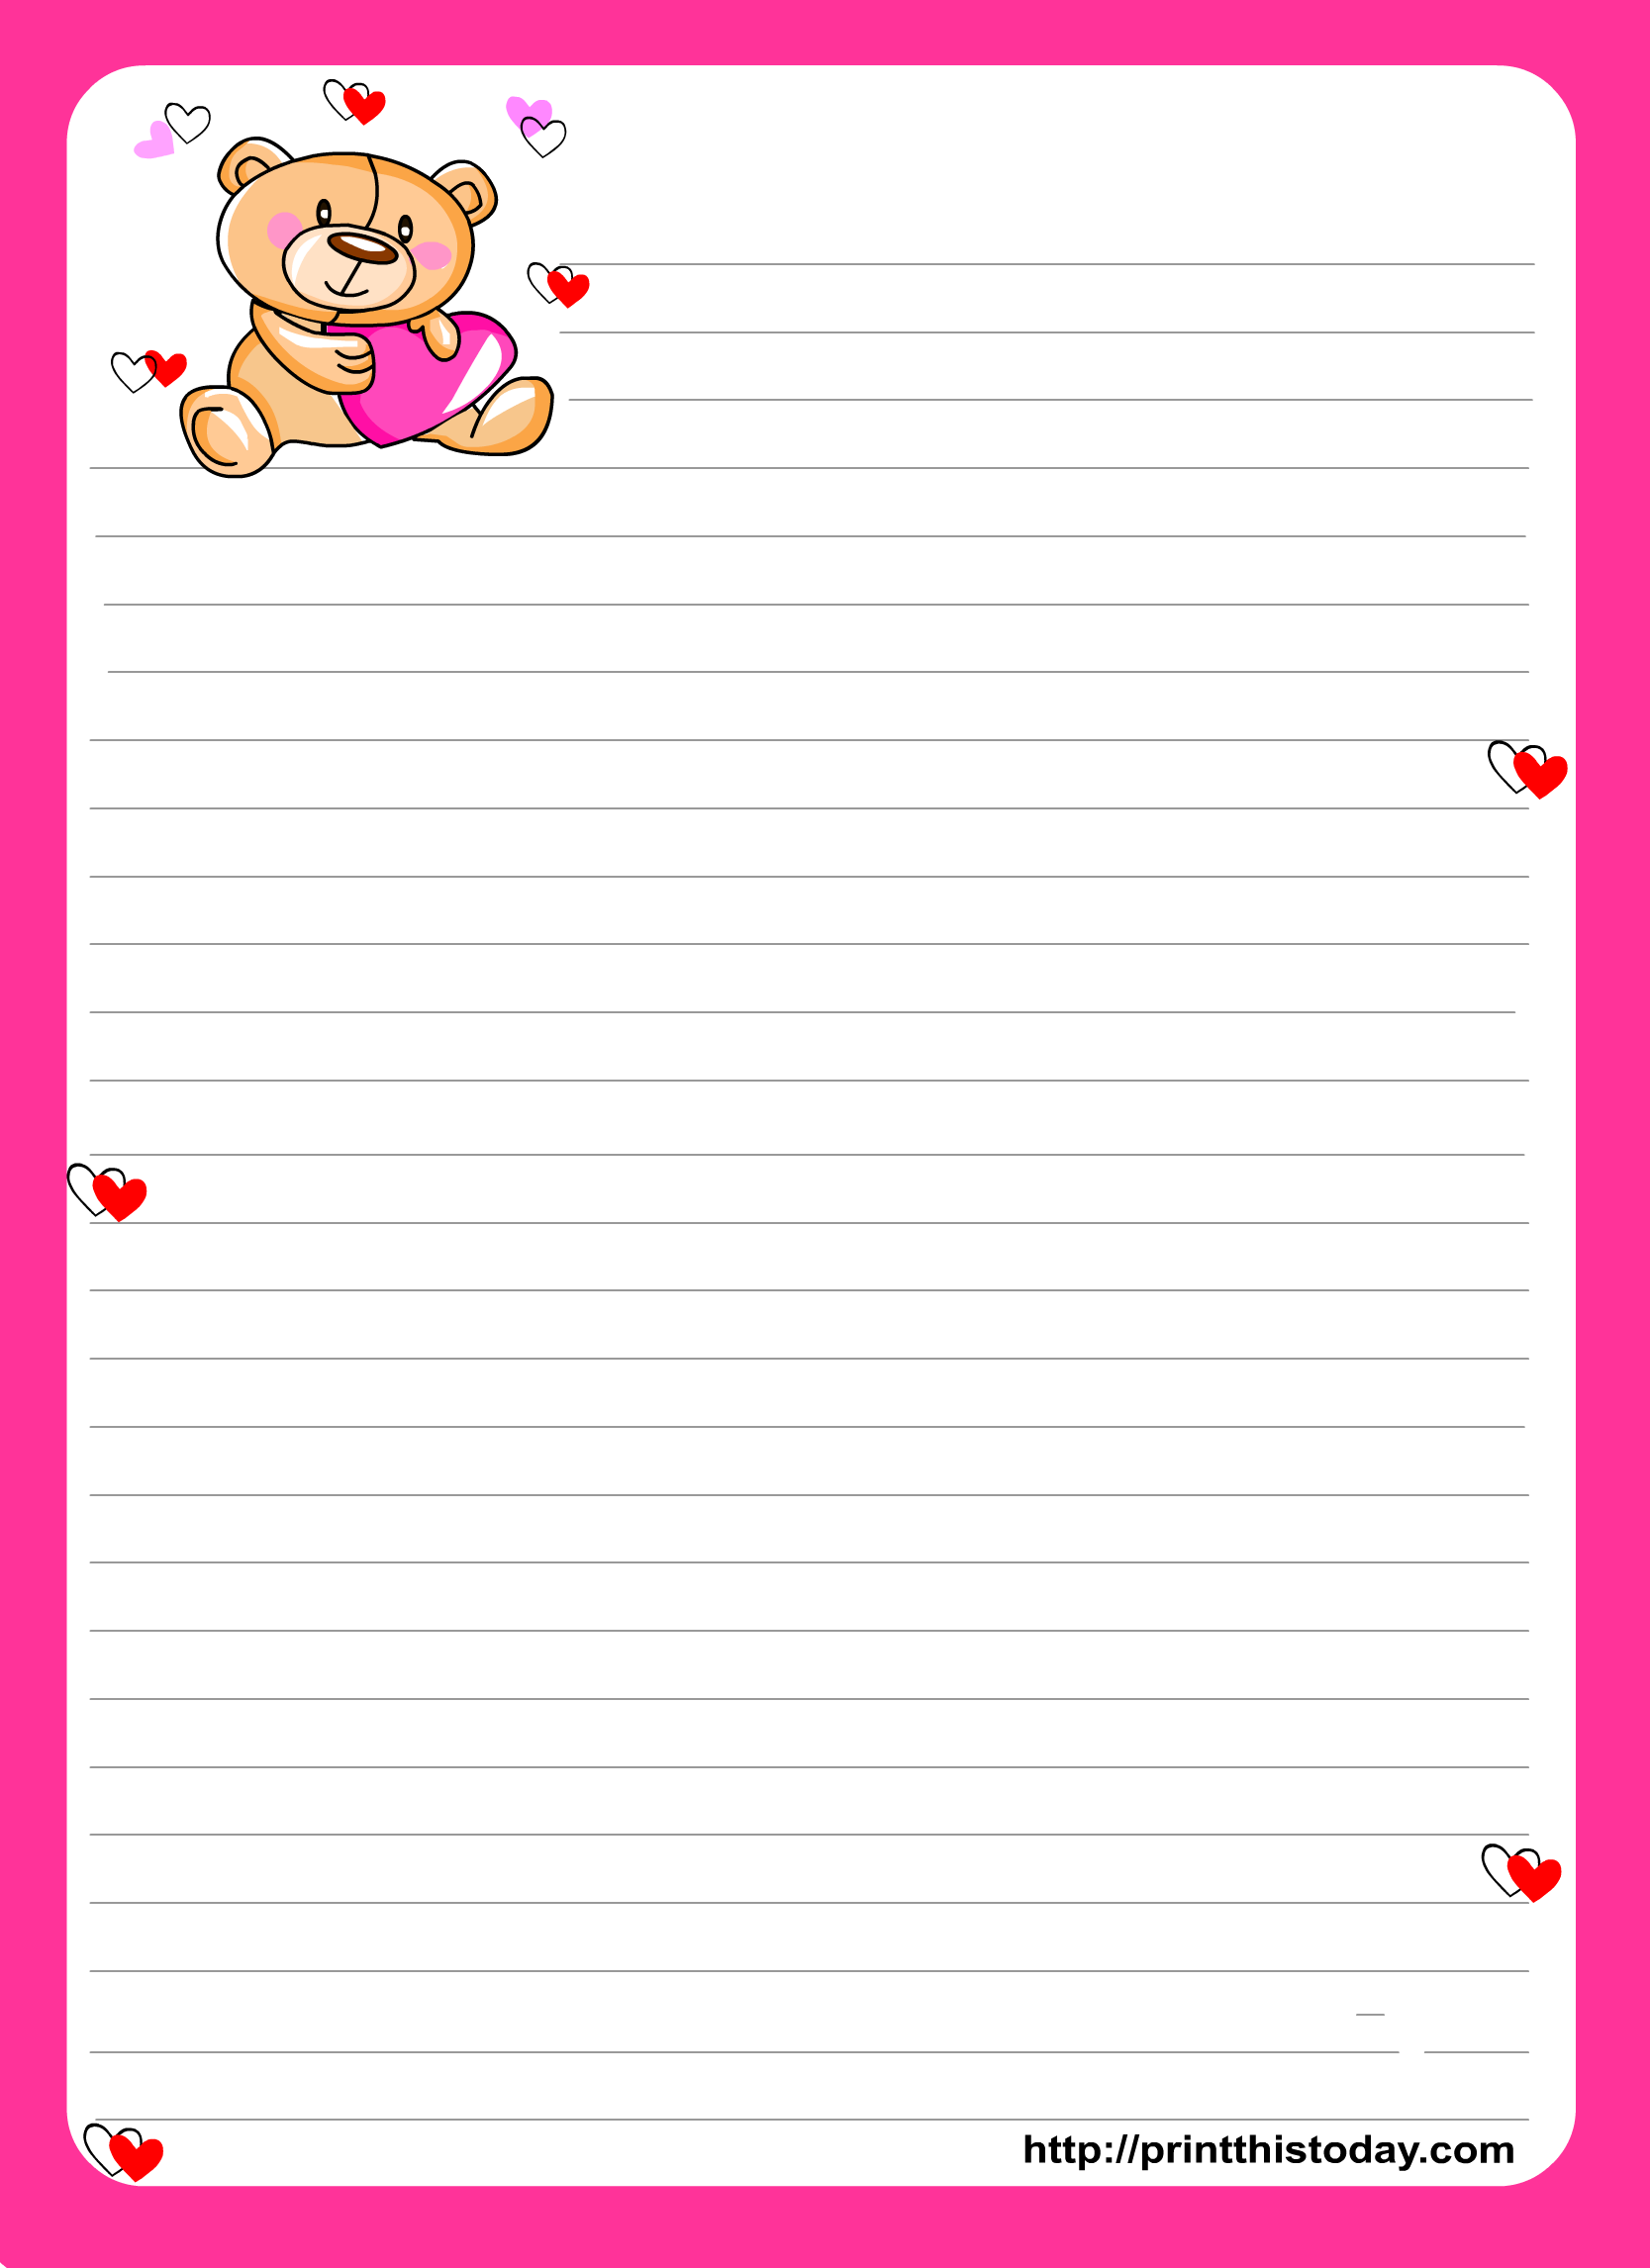 letter pad stationery design with teddy bear holding balloons letter writing paper template letter writing paper template